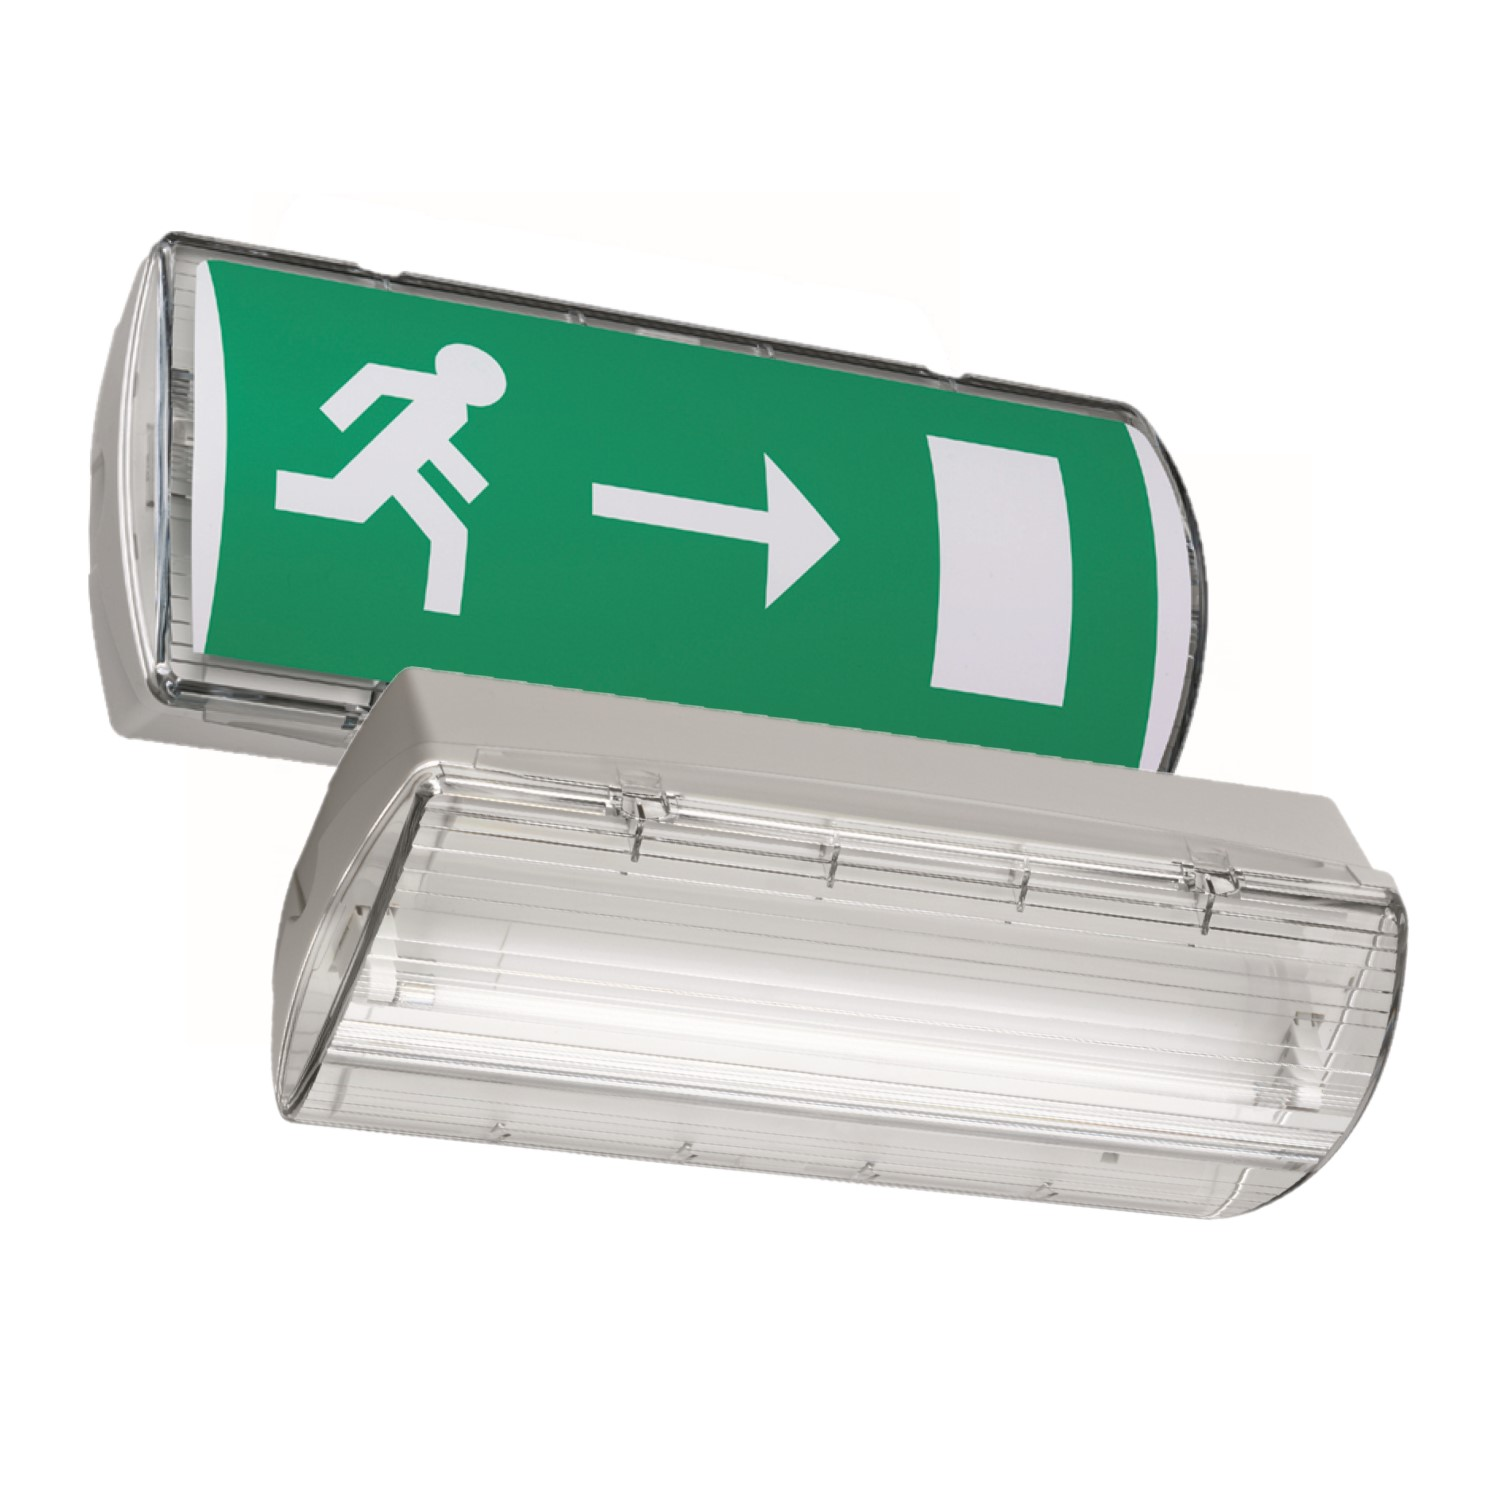 hight resolution of go to atlantic self contained safety exit sign